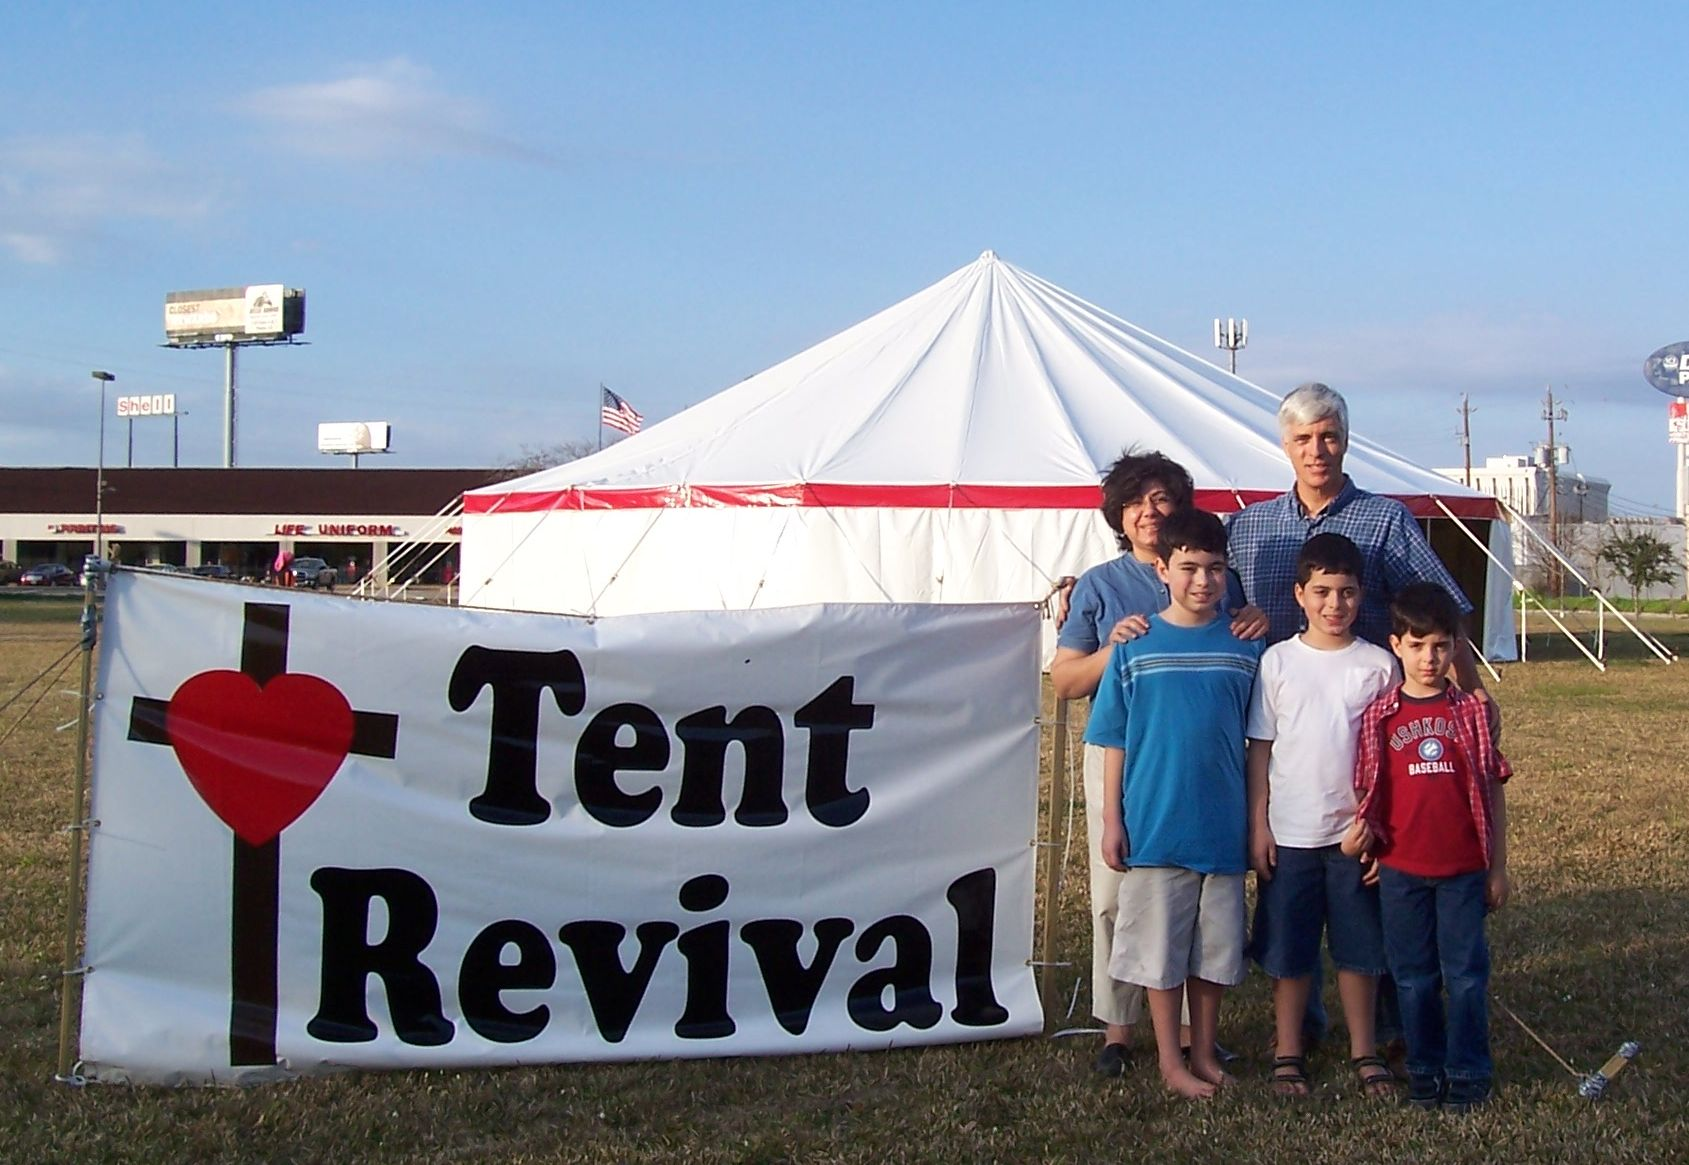 u201cI am the third owner of a 52u2032 x 76u2032 Miami Tent. It was originally purchased in 1996. I have been using tents most of my life. This tent went through storms ... & Testimonies